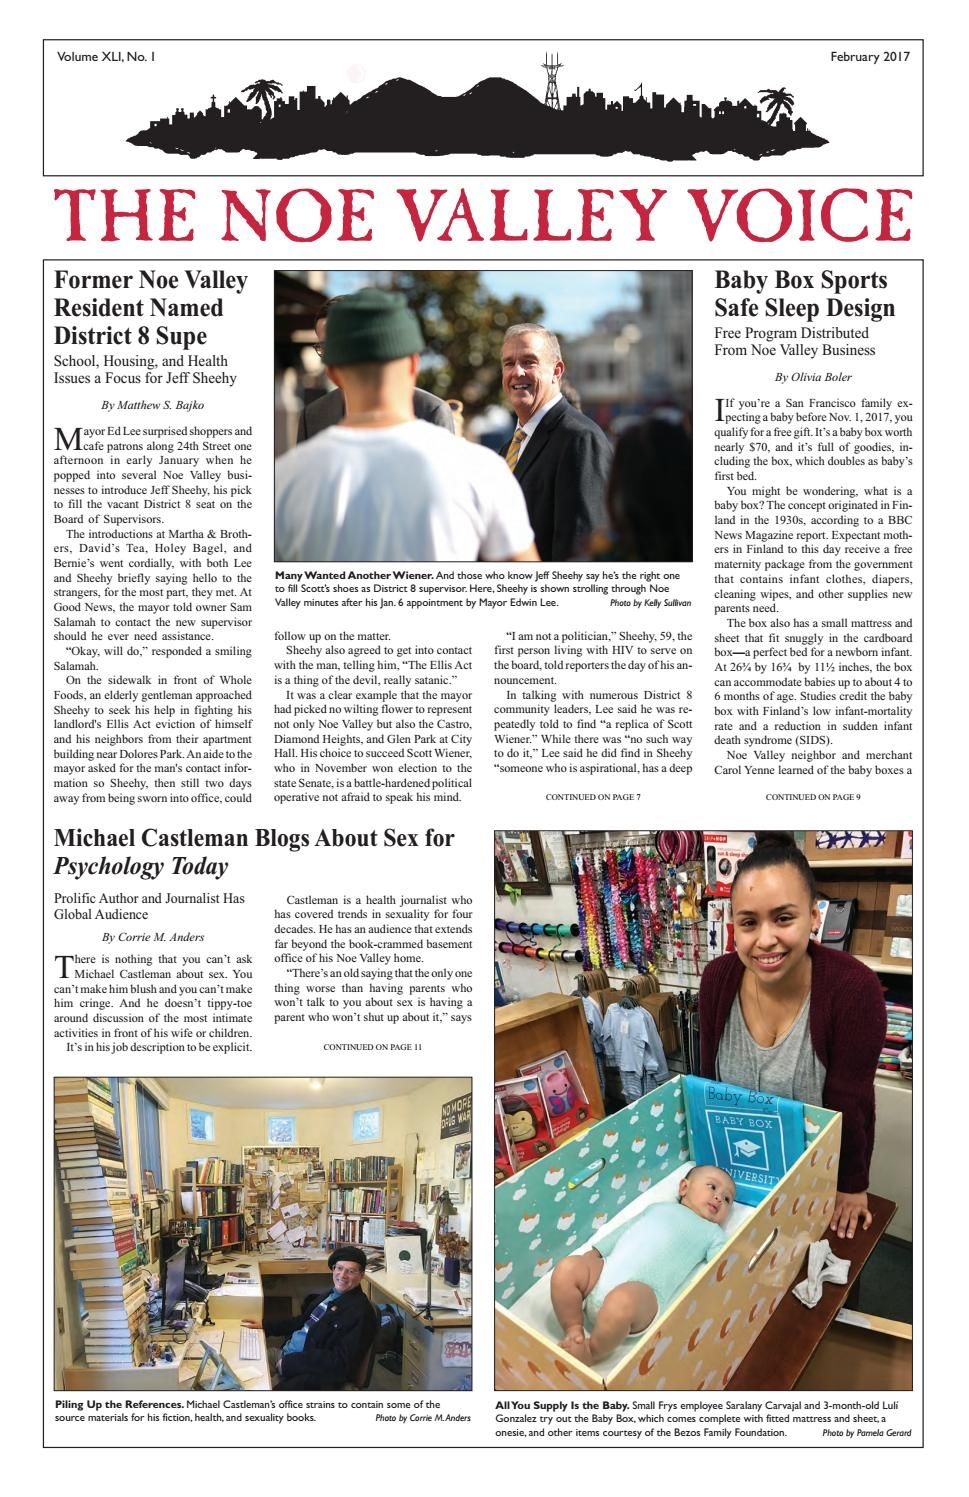 Noe Valley Voice February 2017 By The Noe Valley Voice Issuu The Voice Noe Valley Olivia B